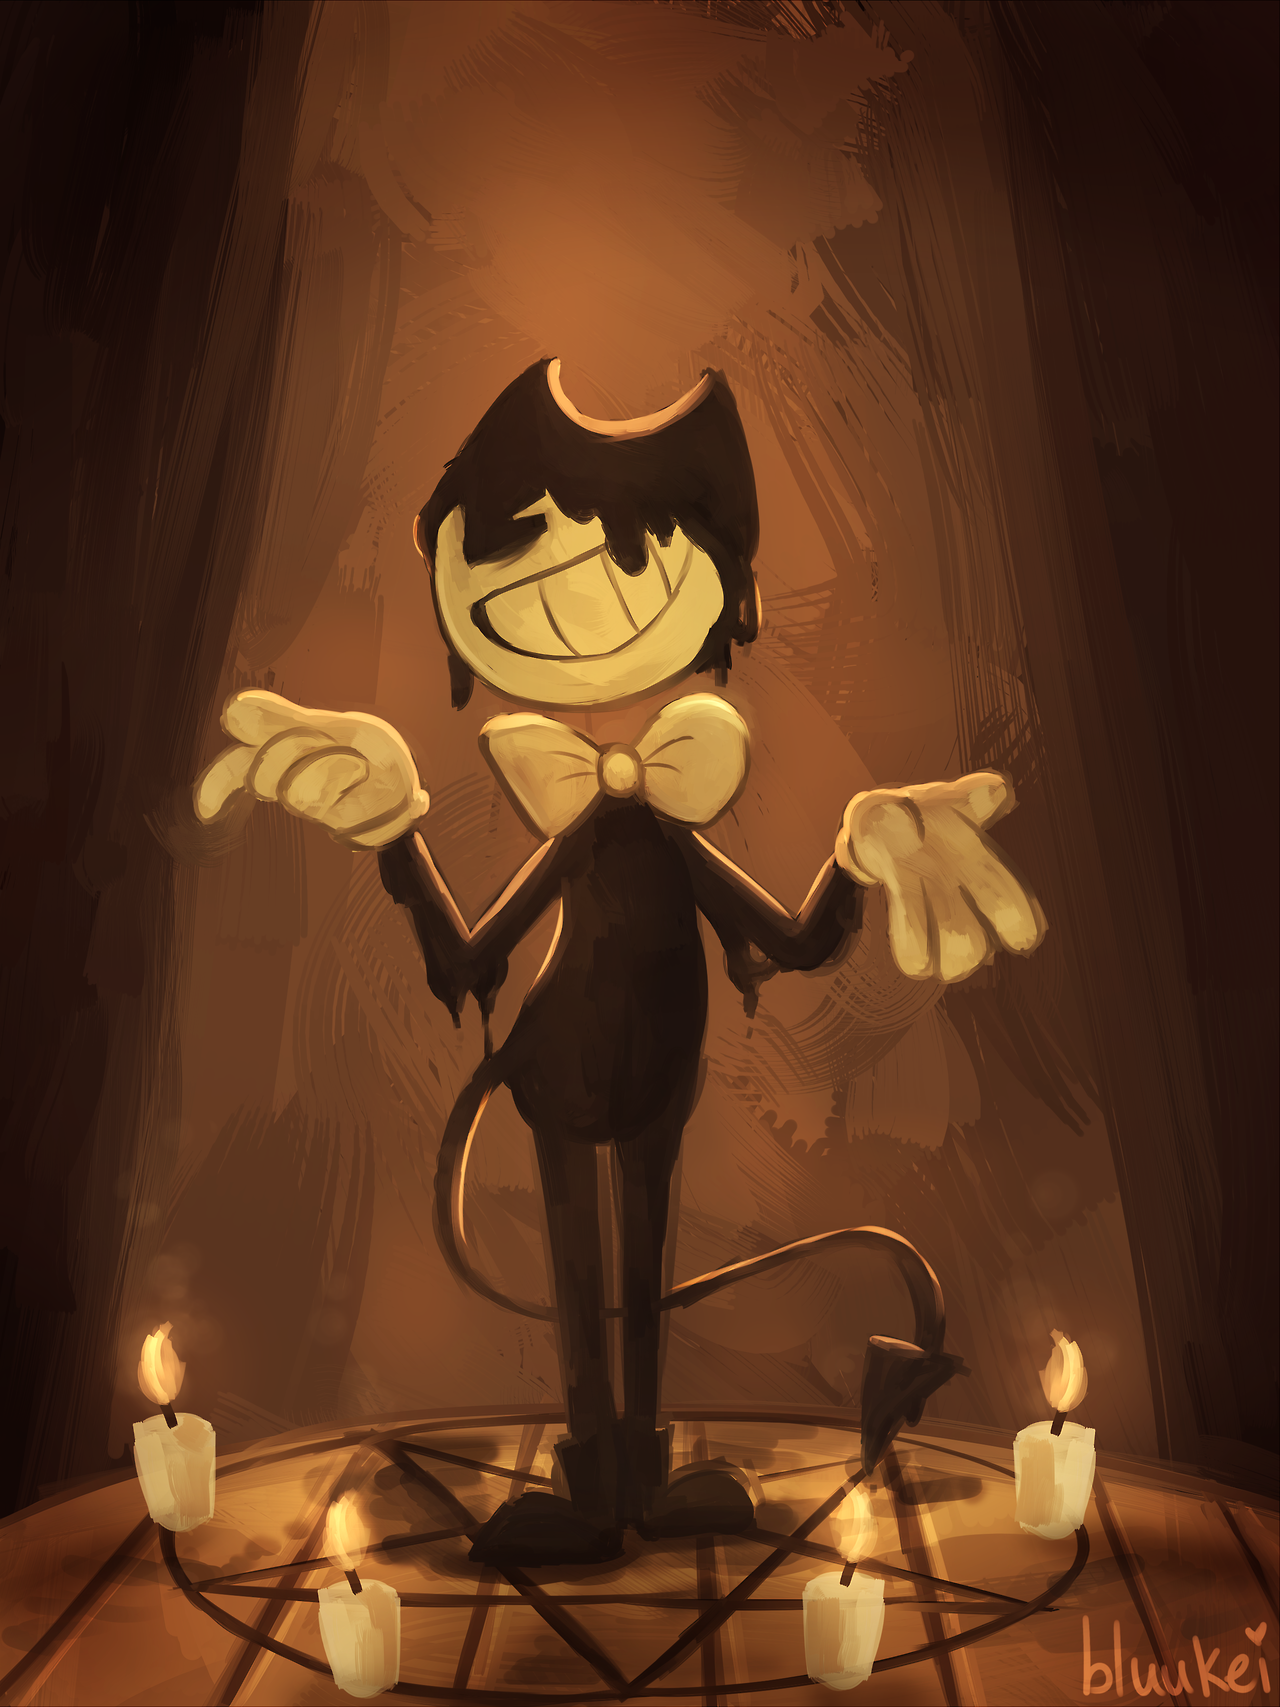 Awesome bendy and the ink machine fan art | Bendy and the ...